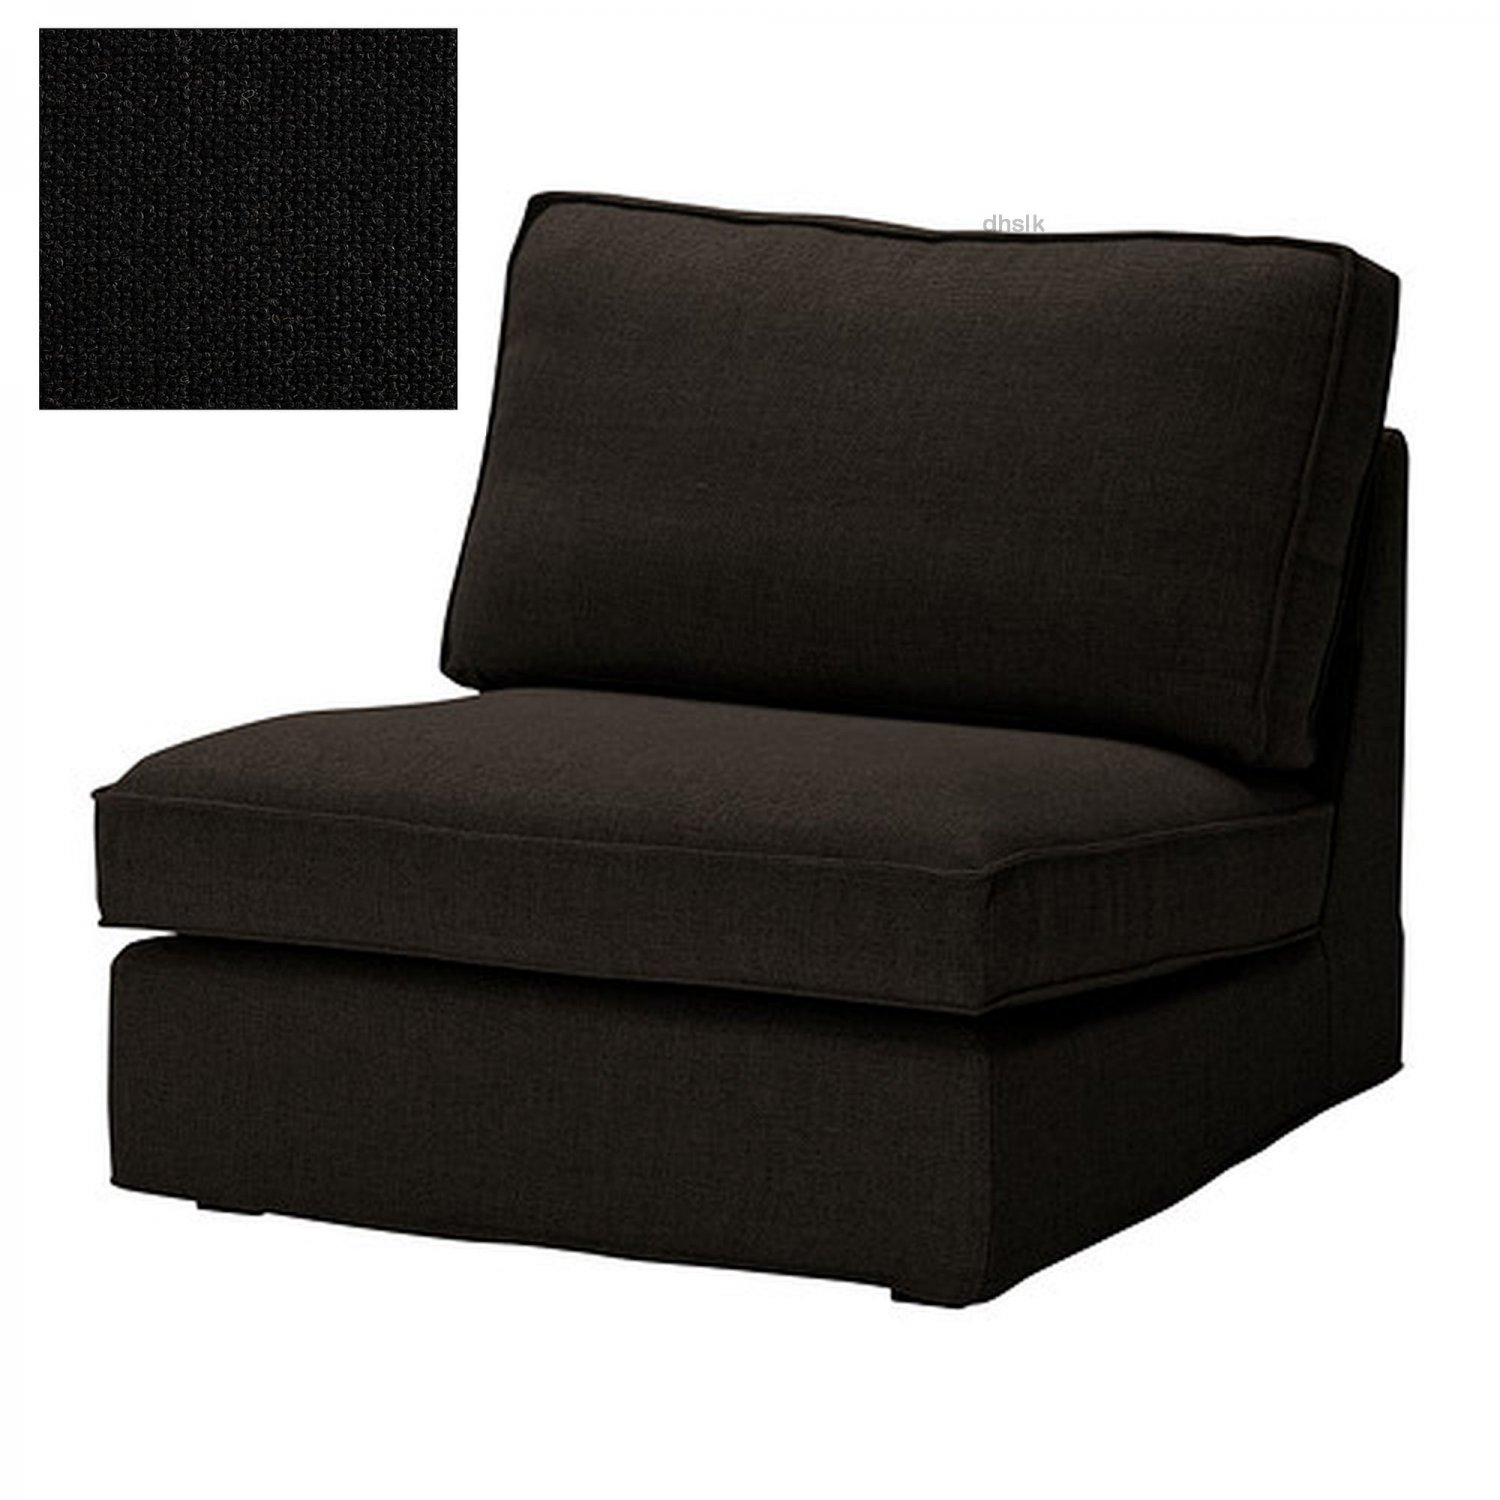 ikea kivik 1 one seat sectional chair slipcover cover teno black ten. Black Bedroom Furniture Sets. Home Design Ideas